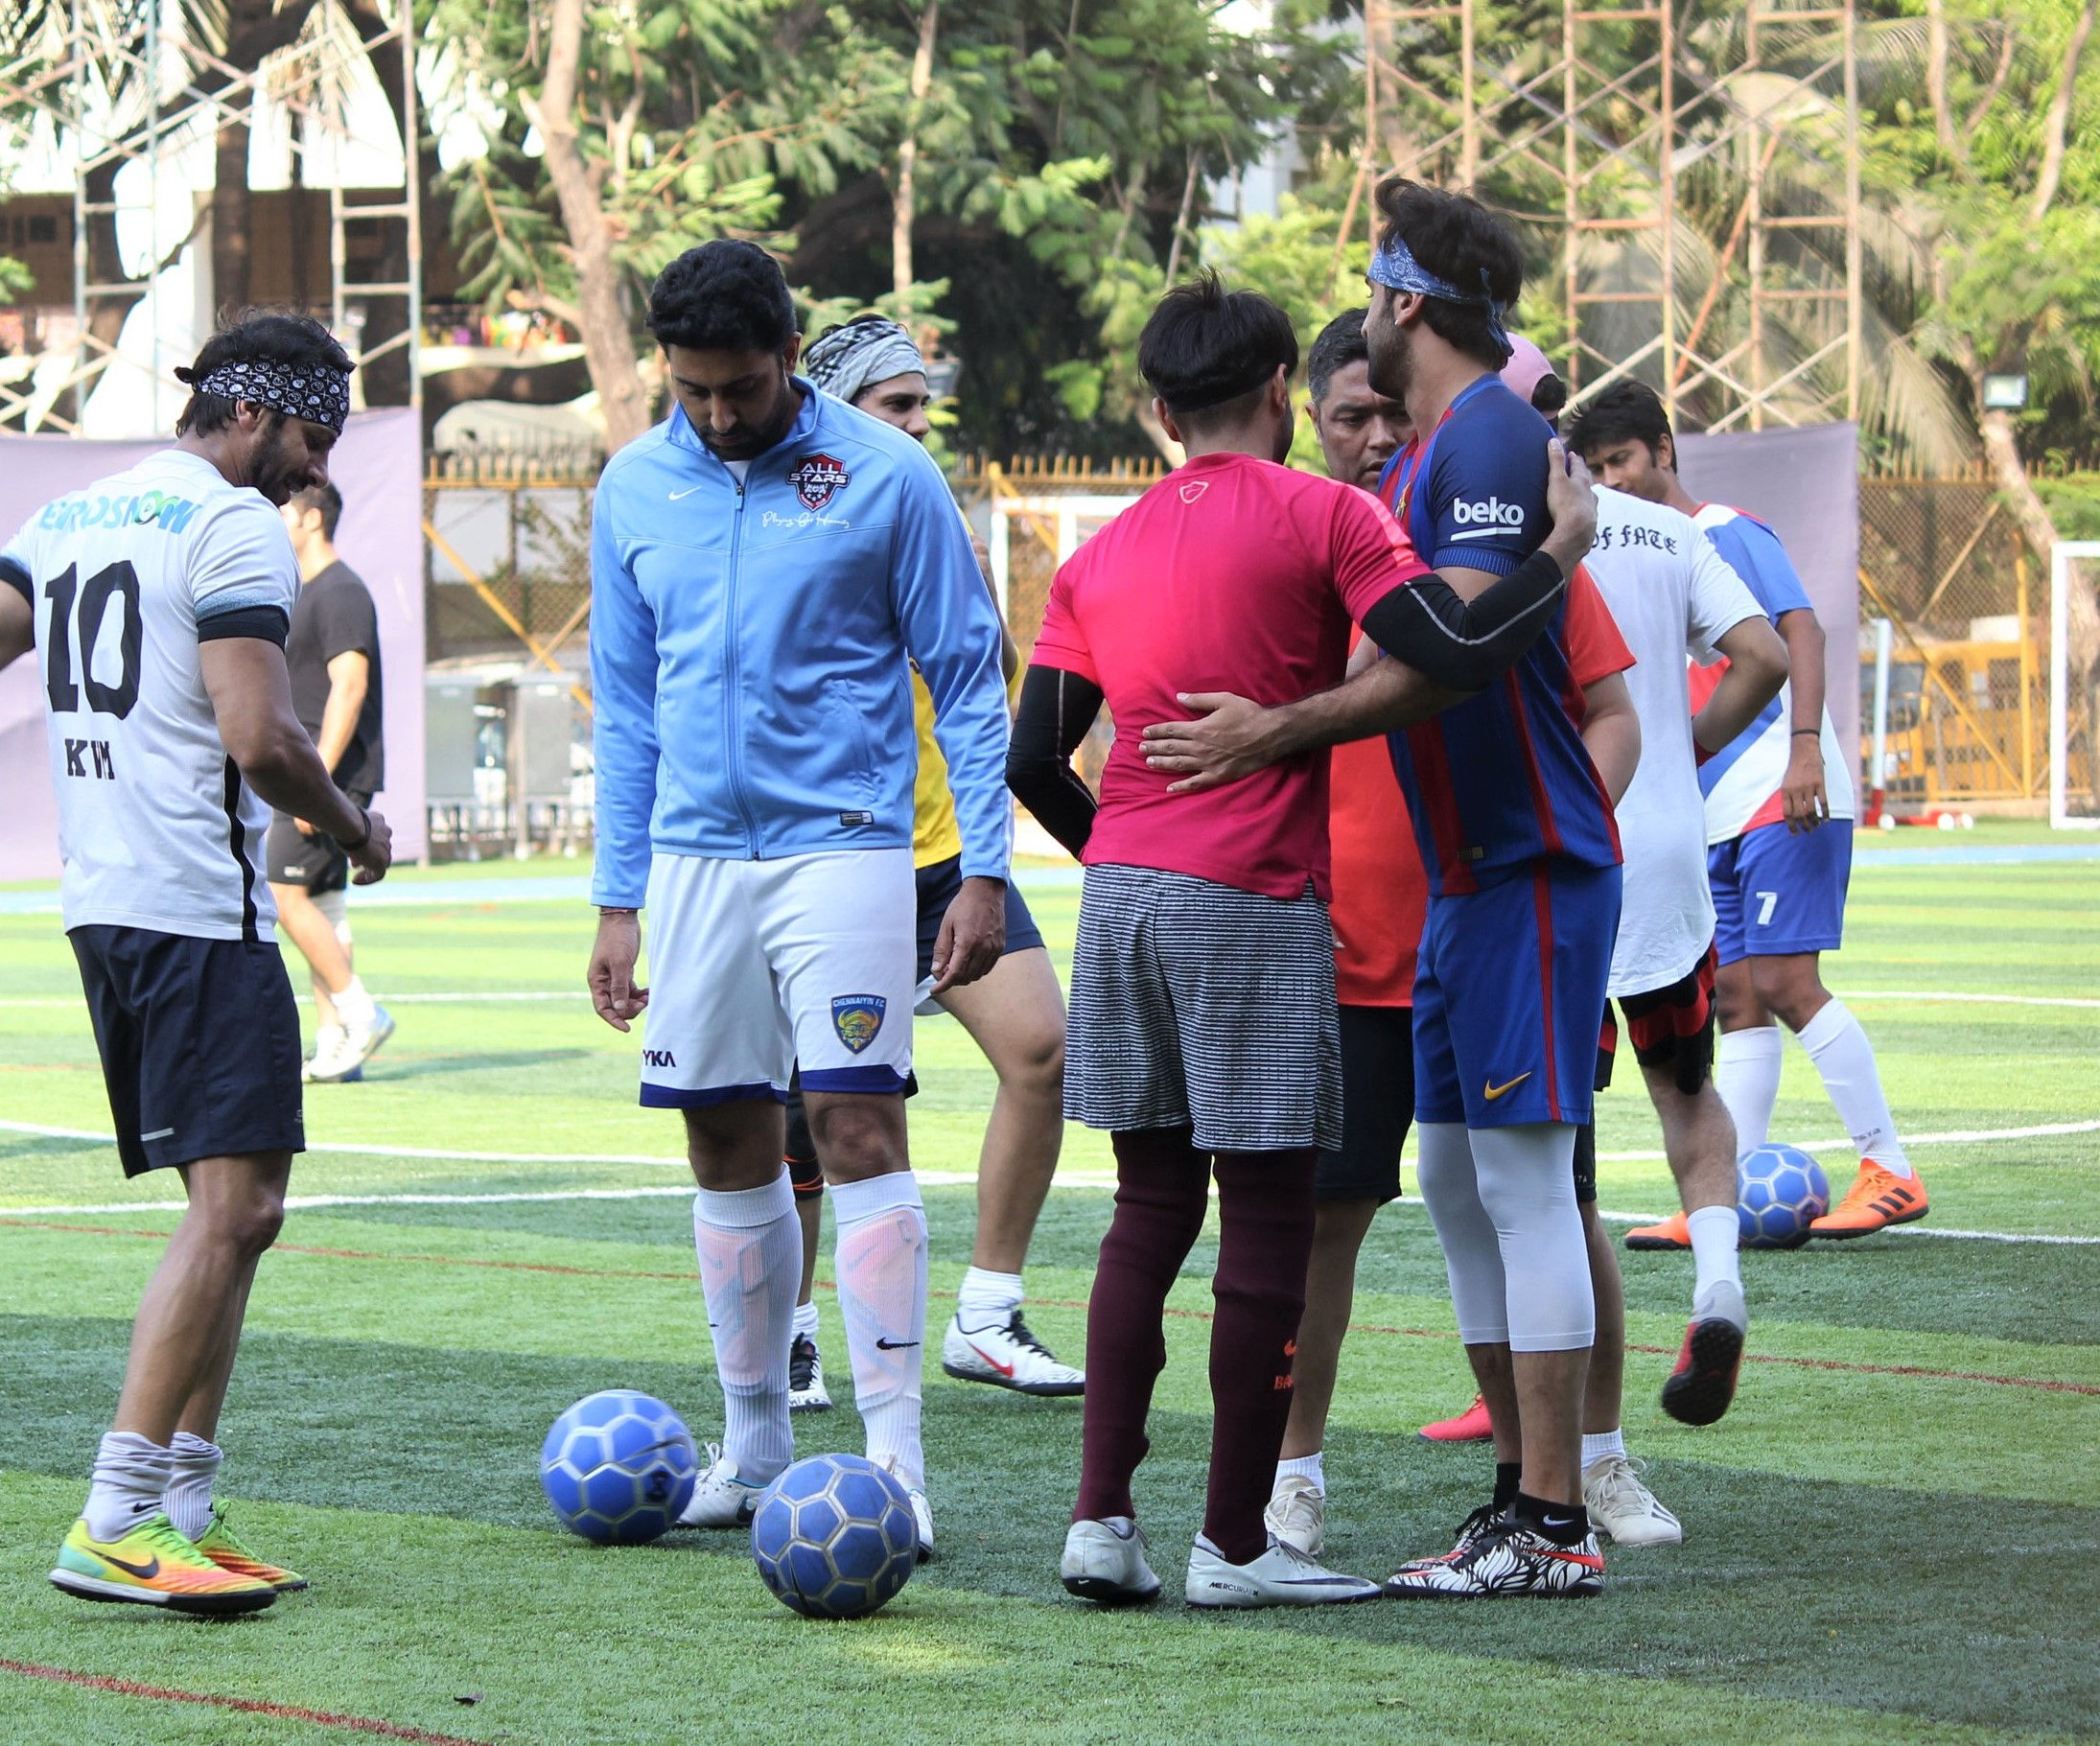 Ranbir Kapoor, Abhishek Bachchan And More Play A Game Of Football